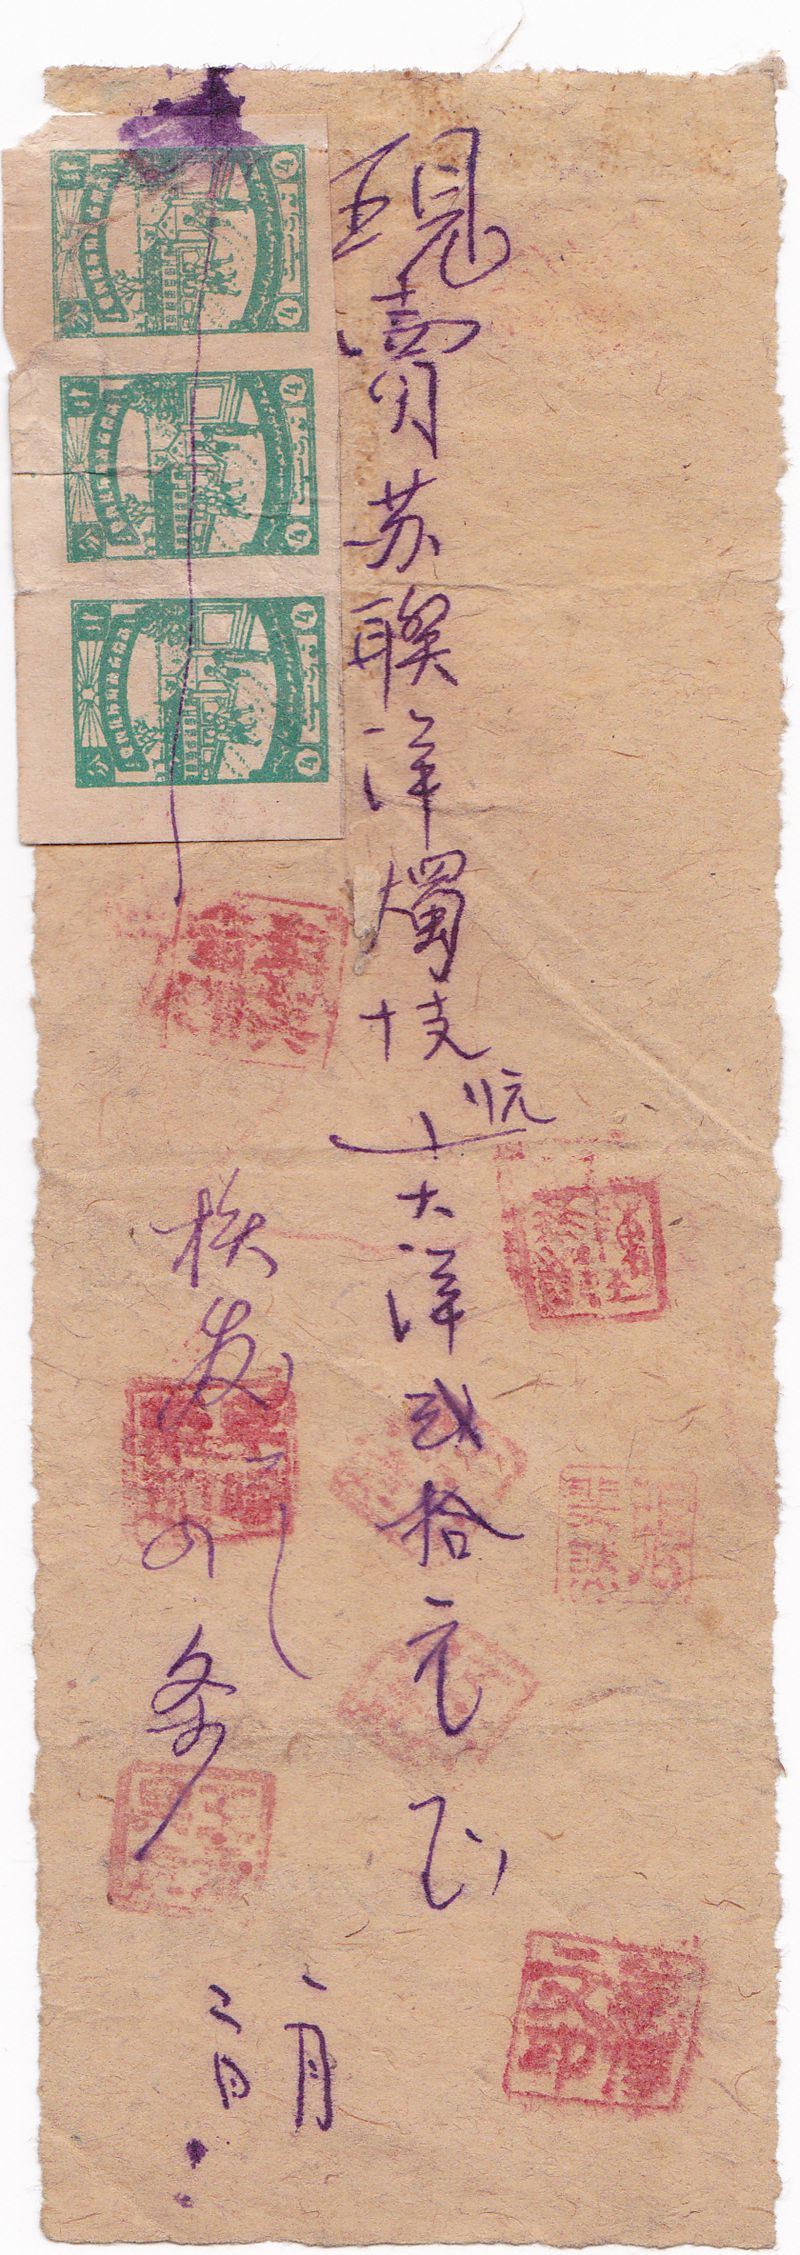 R2033, China Sinkiang 4 Cents Revenue Stamp for three pcs in the sheet, 1948